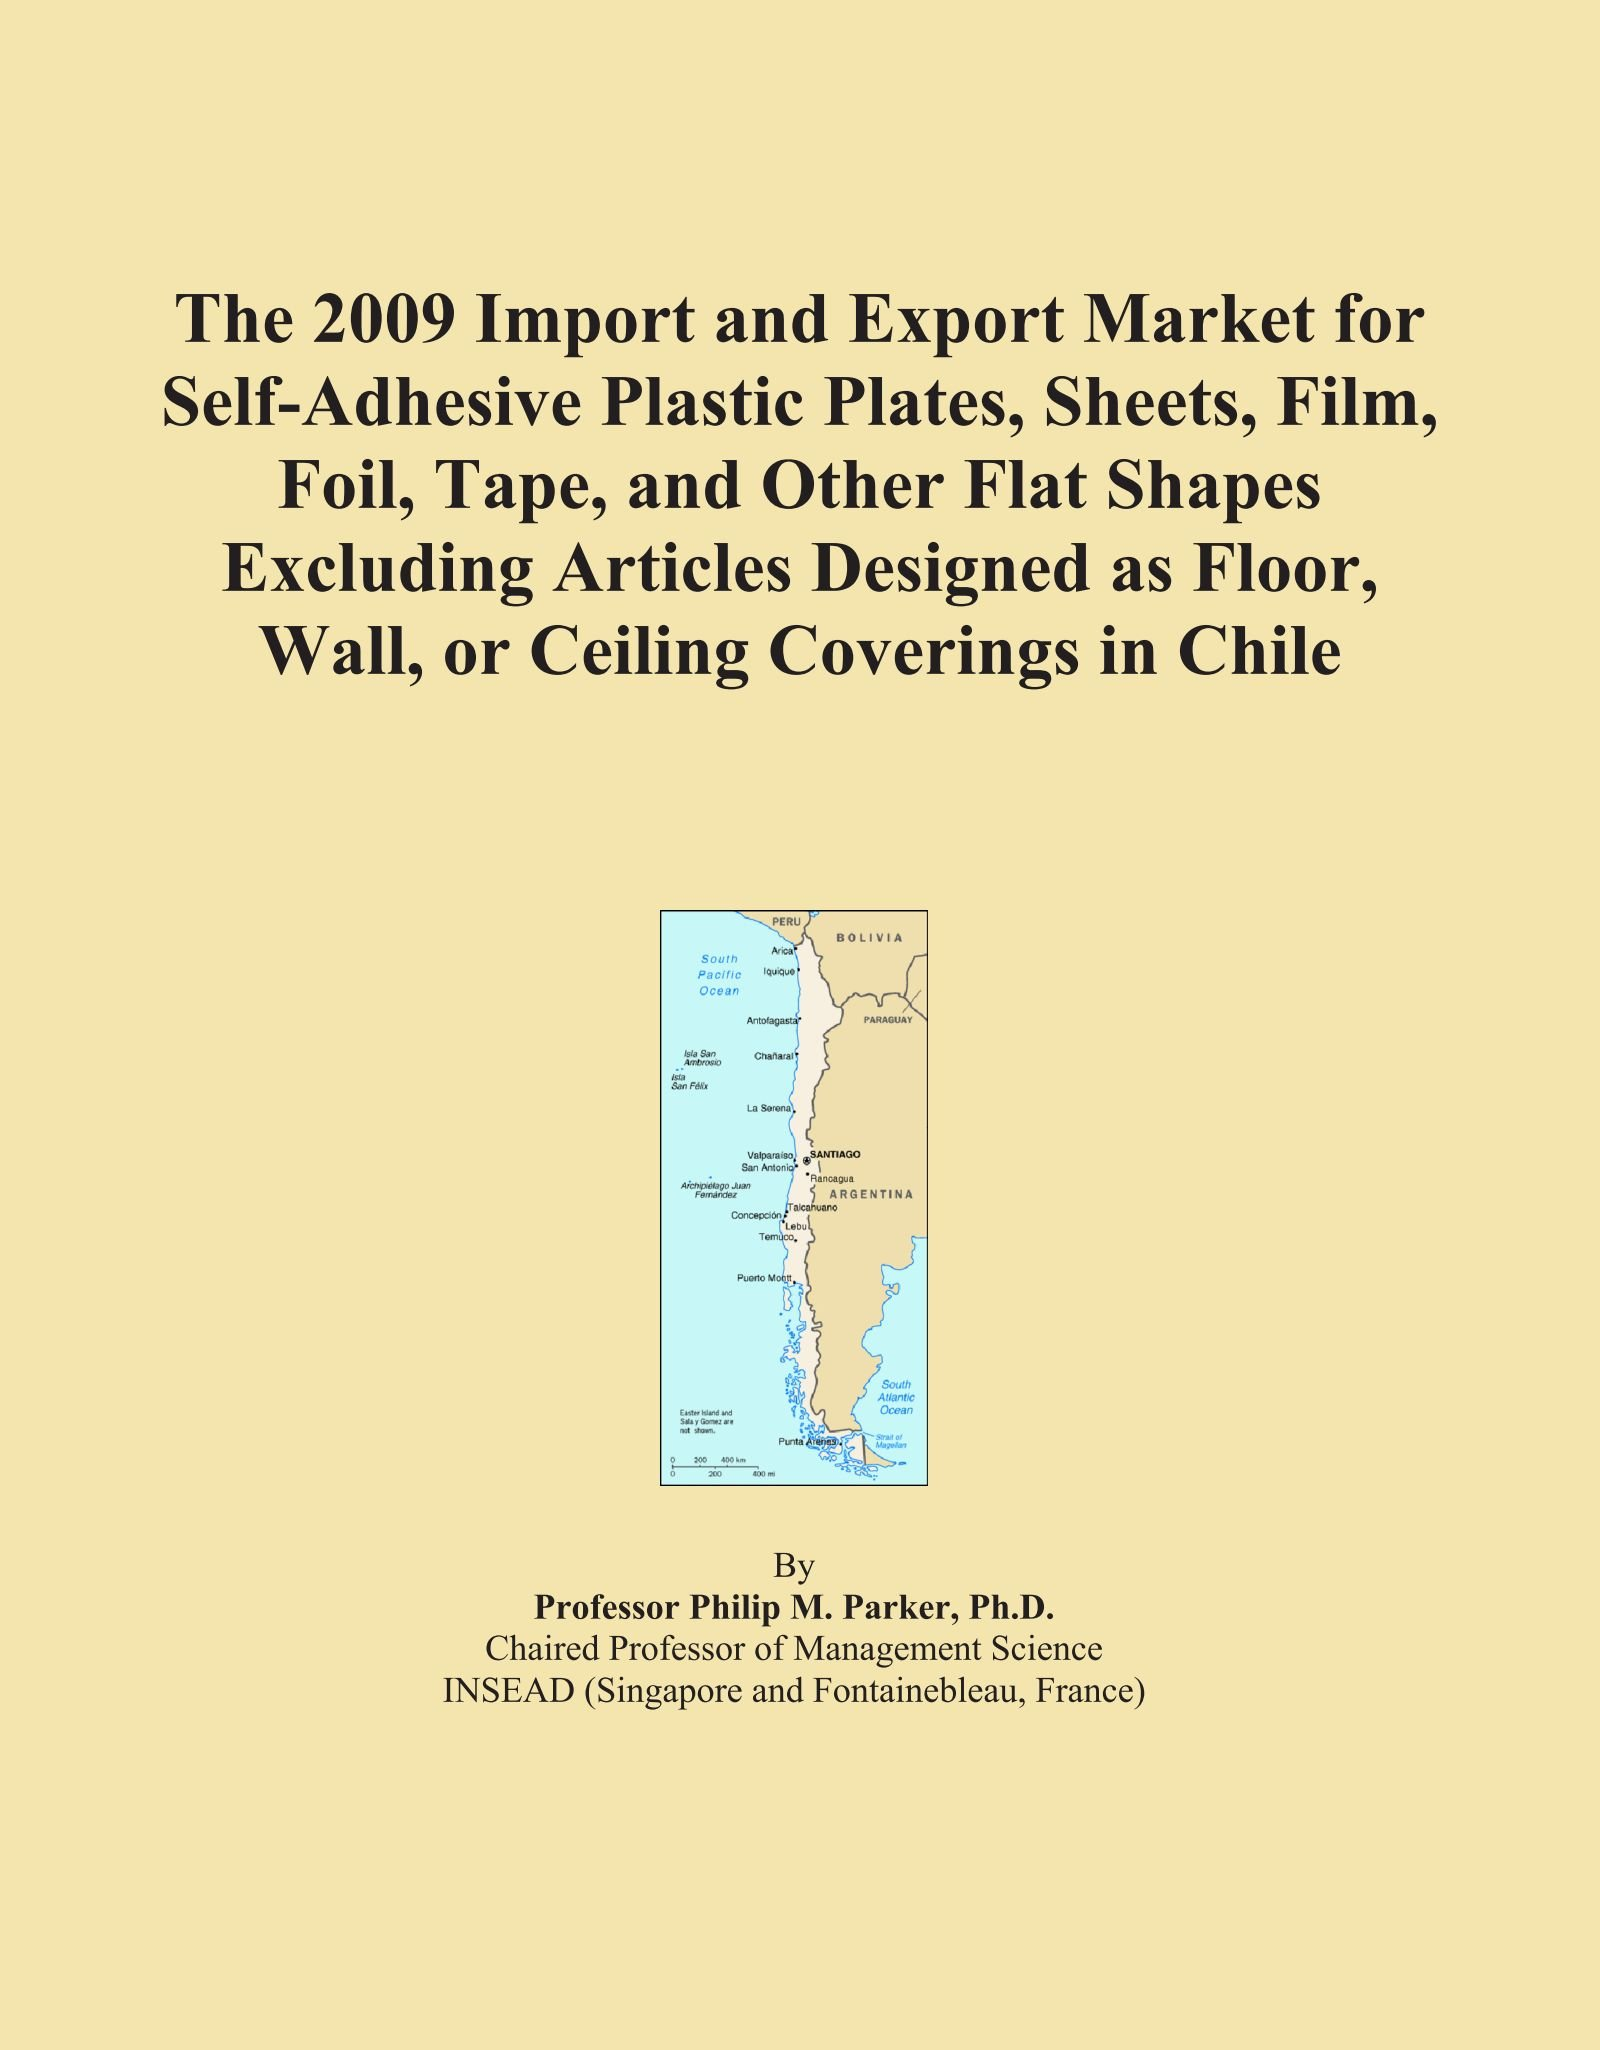 The 2009 Import and Export Market for Self-Adhesive Plastic Plates, Sheets, Film, Foil, Tape, and Other Flat Shapes Excluding Articles Designed as Floor, Wall, or Ceiling Coverings in Chile pdf